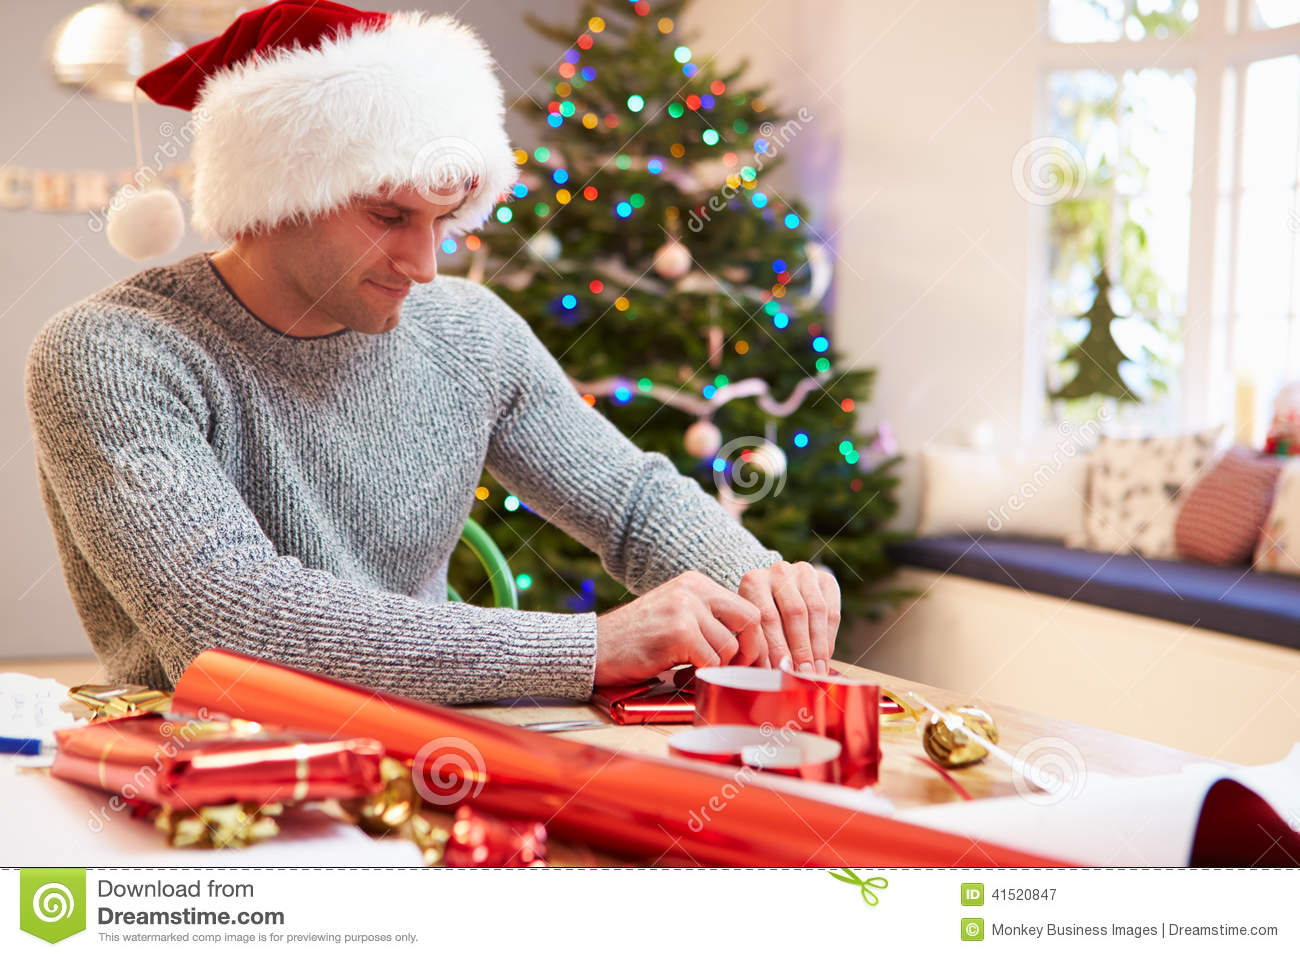 Man Wrapping Christmas Gifts At Home Stock Image - Image ...